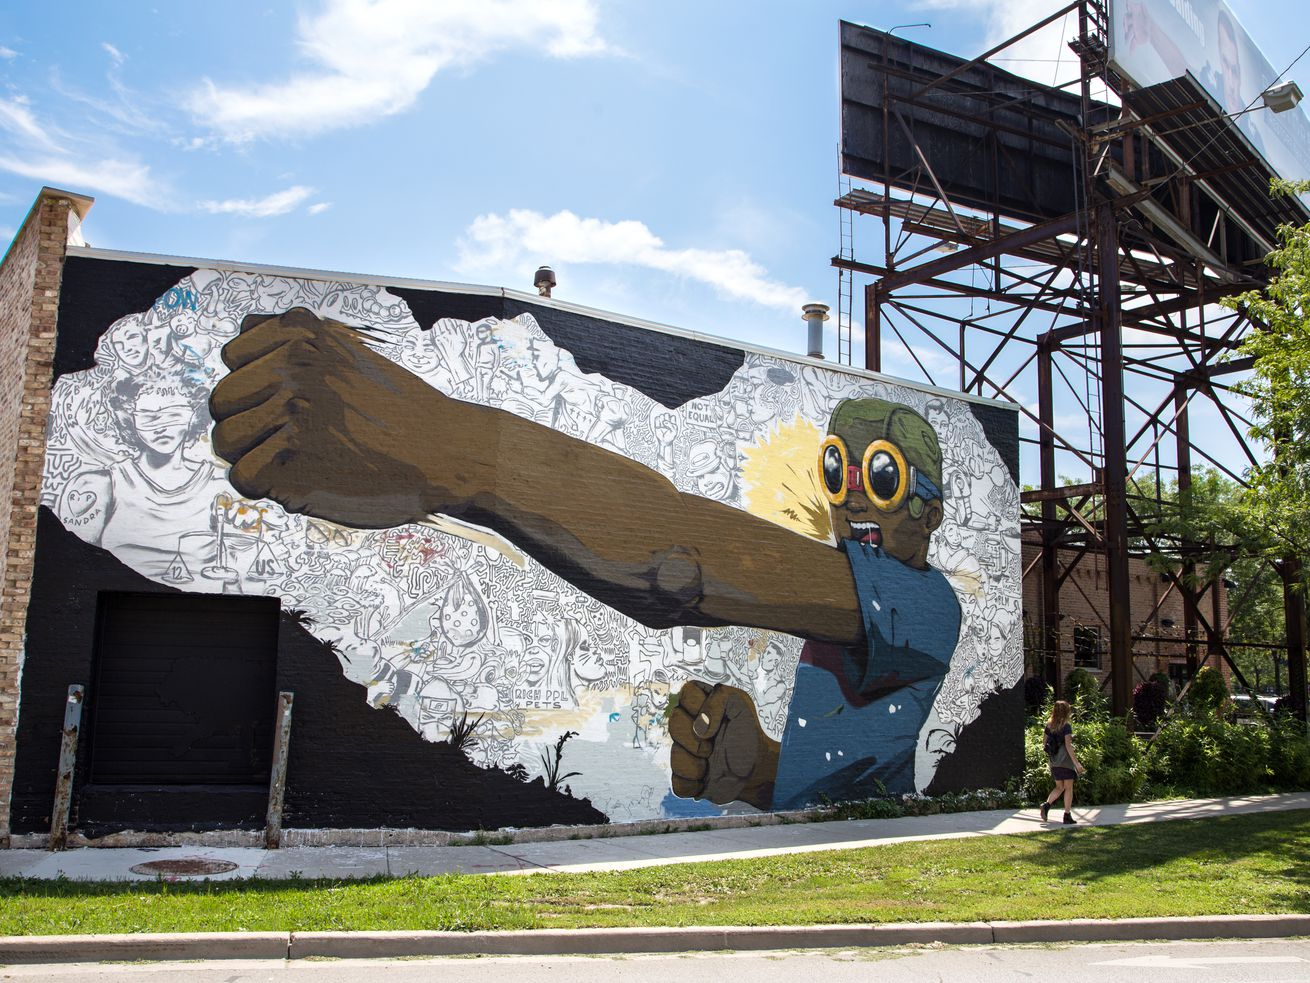 The building at 1400 W. Randolph Street features a mural by artist Hebru Brantley fronting Ogden Avenue.